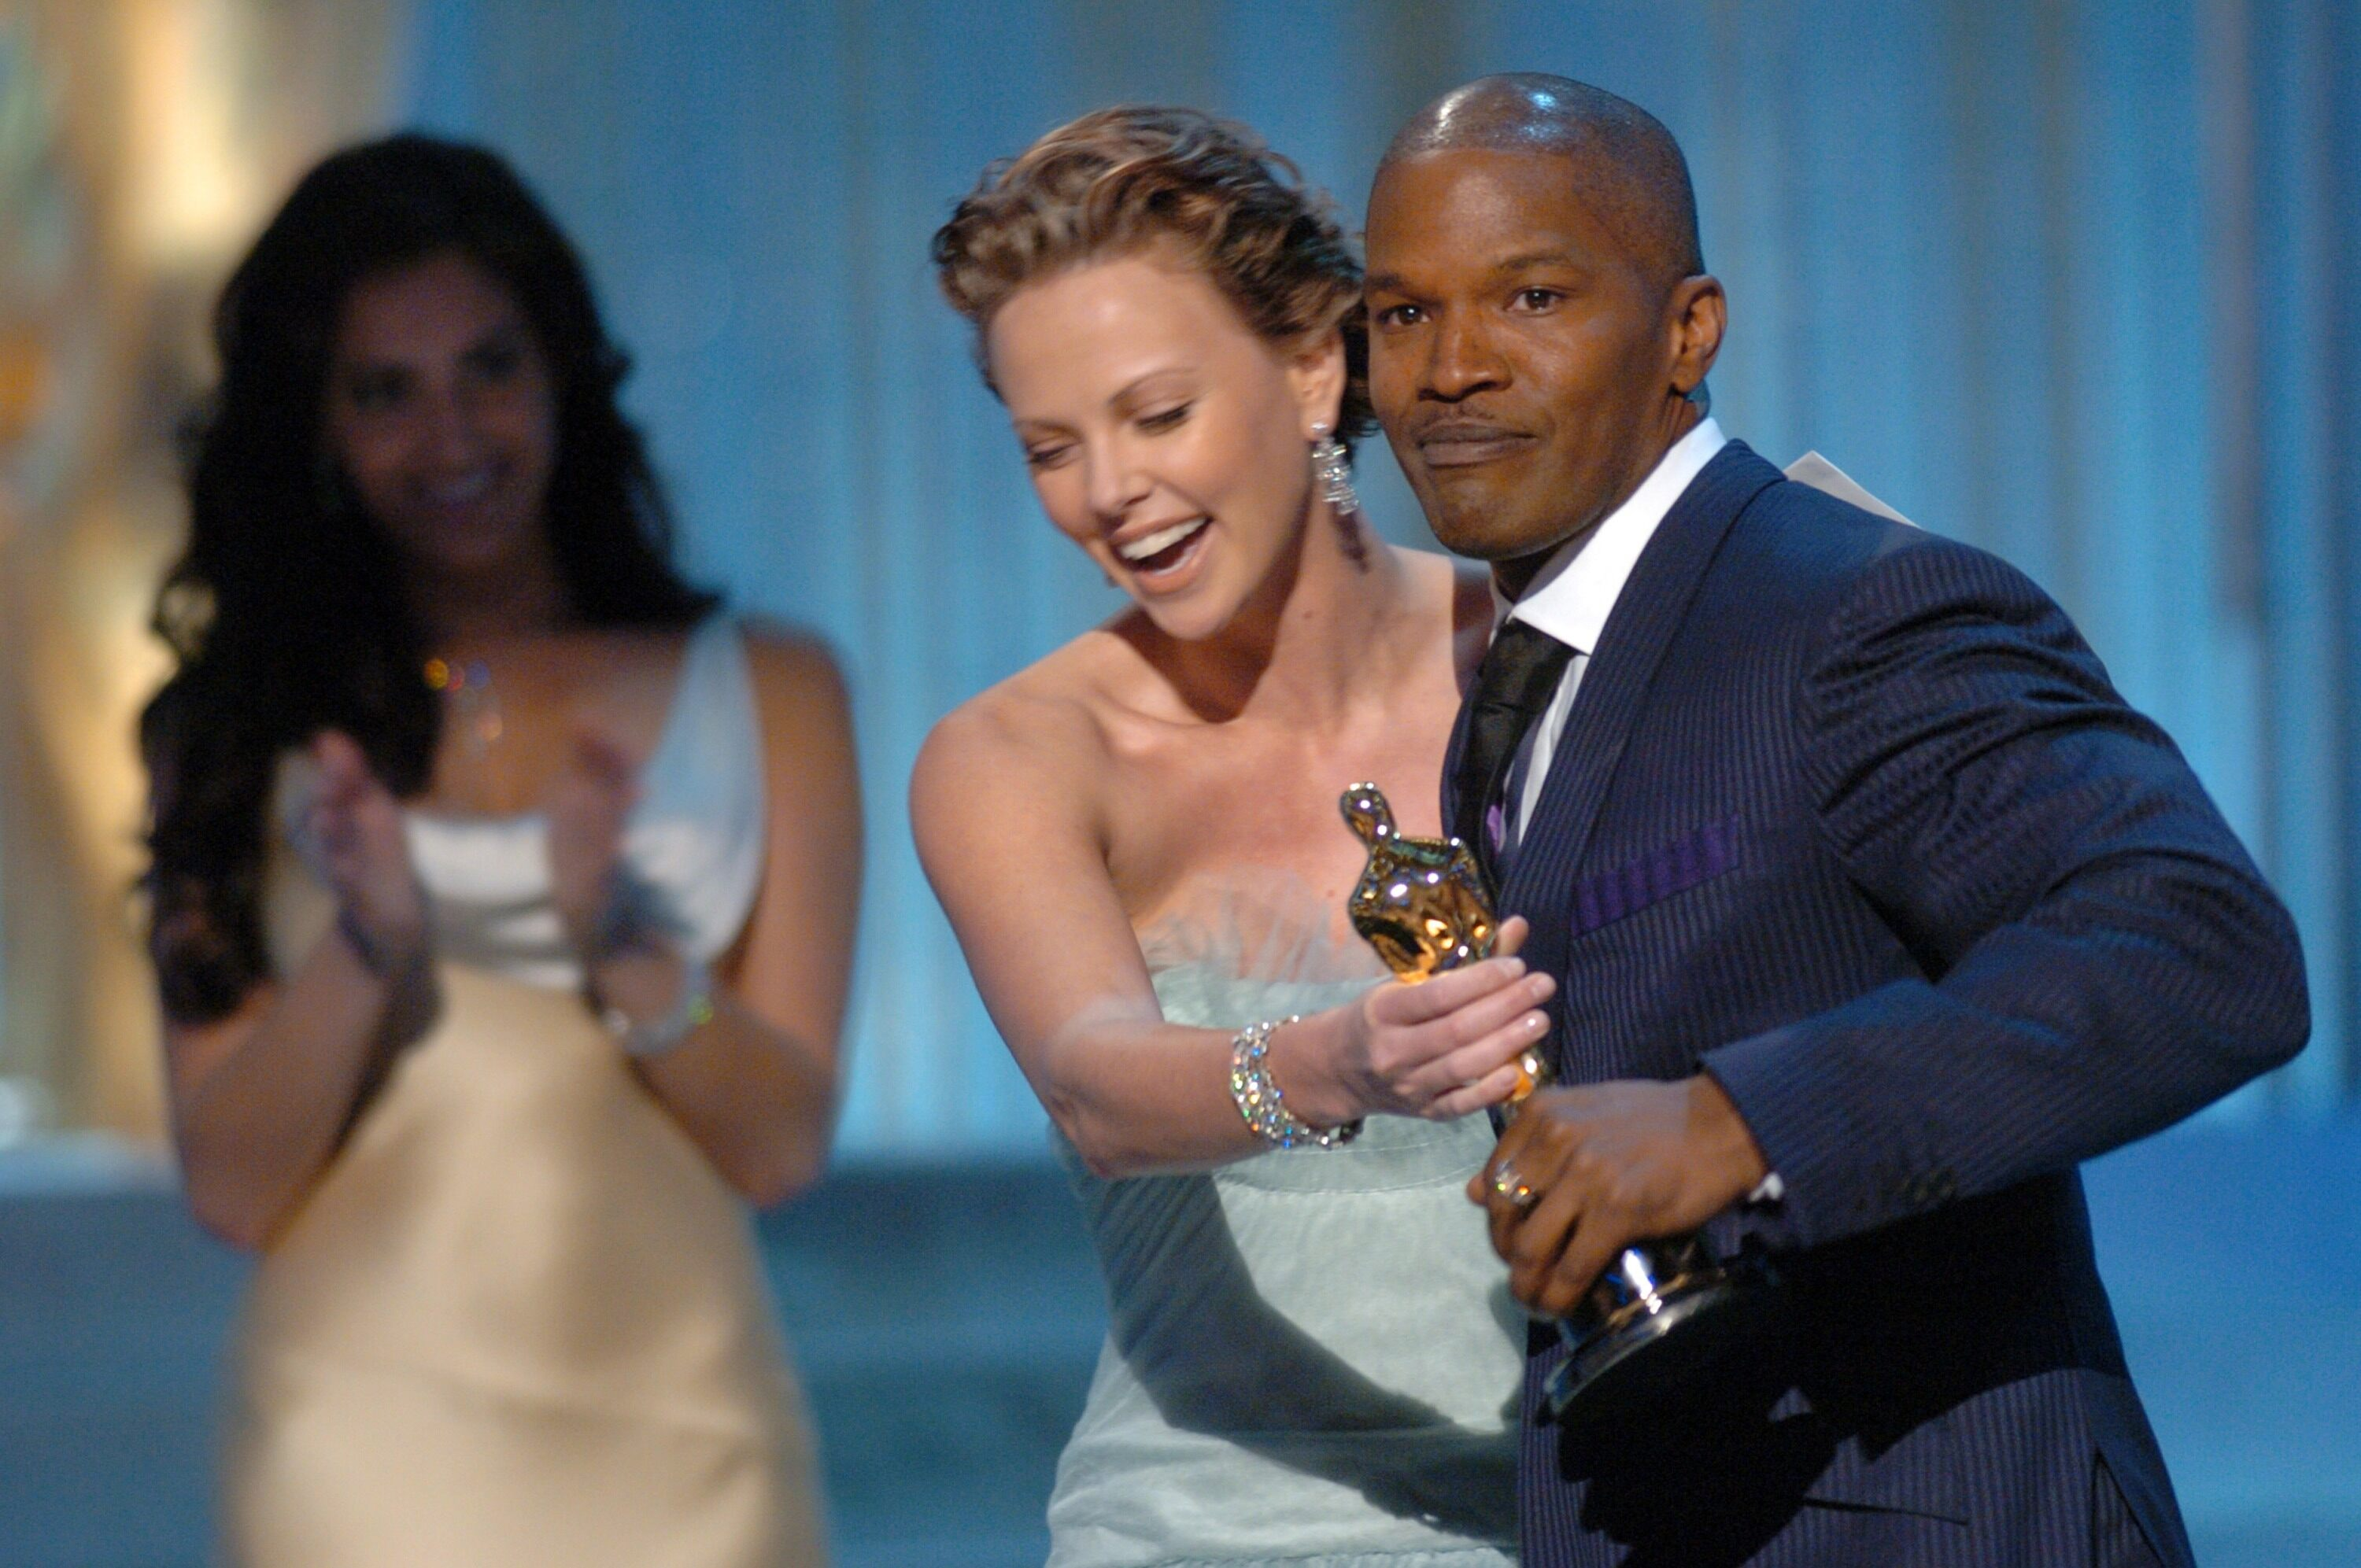 Jamie Foxx accepts the Academy Award for Best Actor from Oscar winner Charlize Theron.